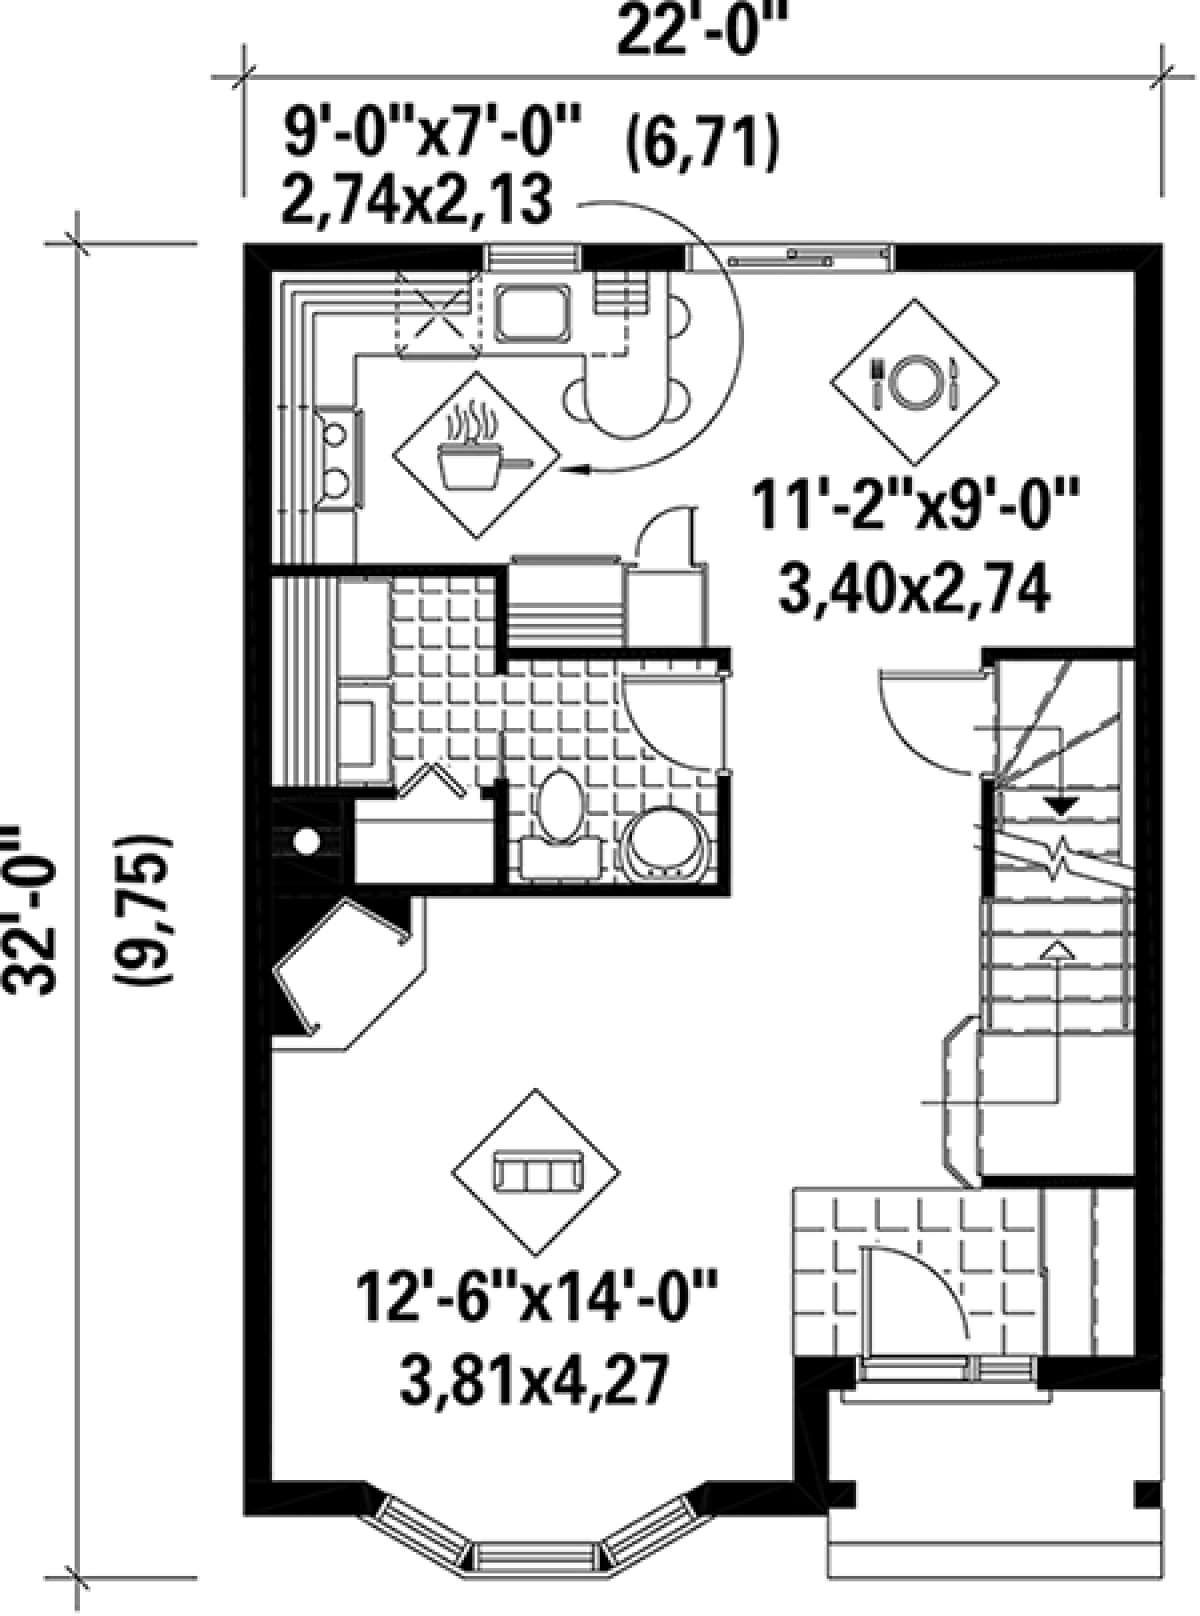 Traditional Plan: 1,302 Square Feet, 2 Bedrooms, 1.5 Bathrooms - 6146-00208